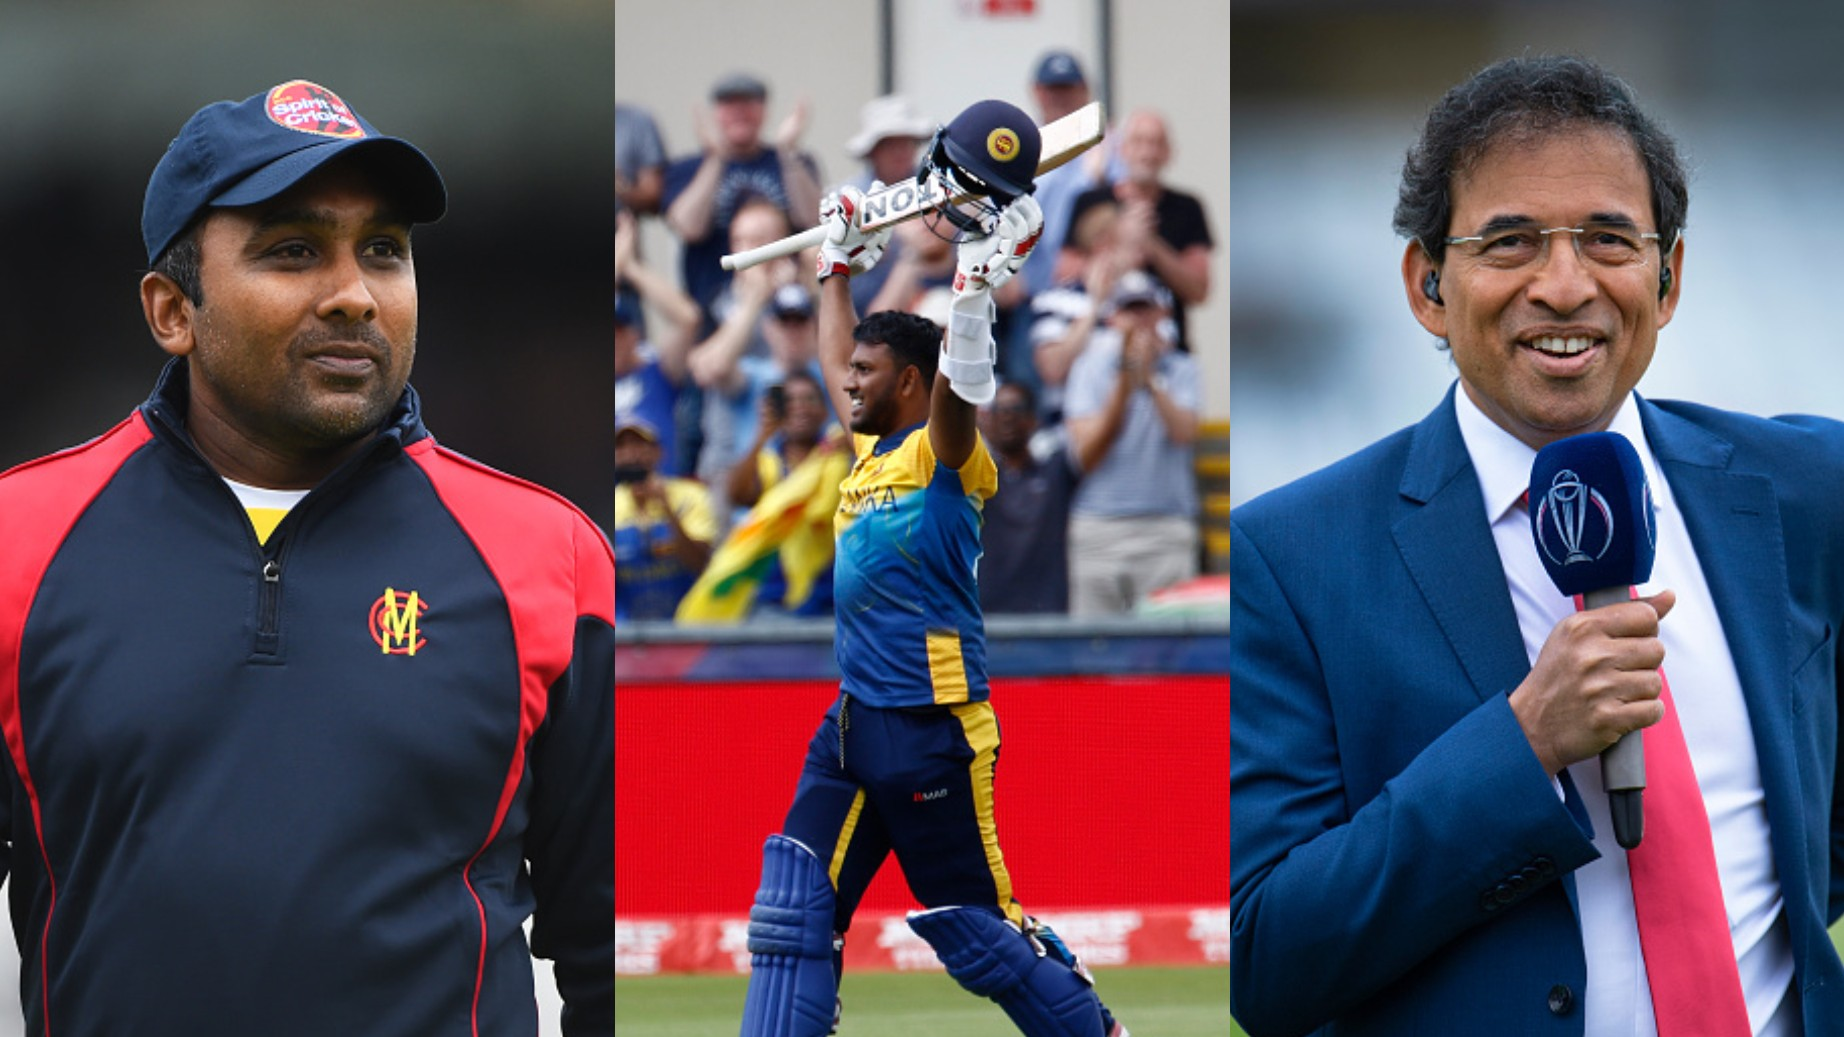 CWC 2019: Cricket fraternity lauds Avishka Fernando, as his century helps Sri Lanka win by 23 runs